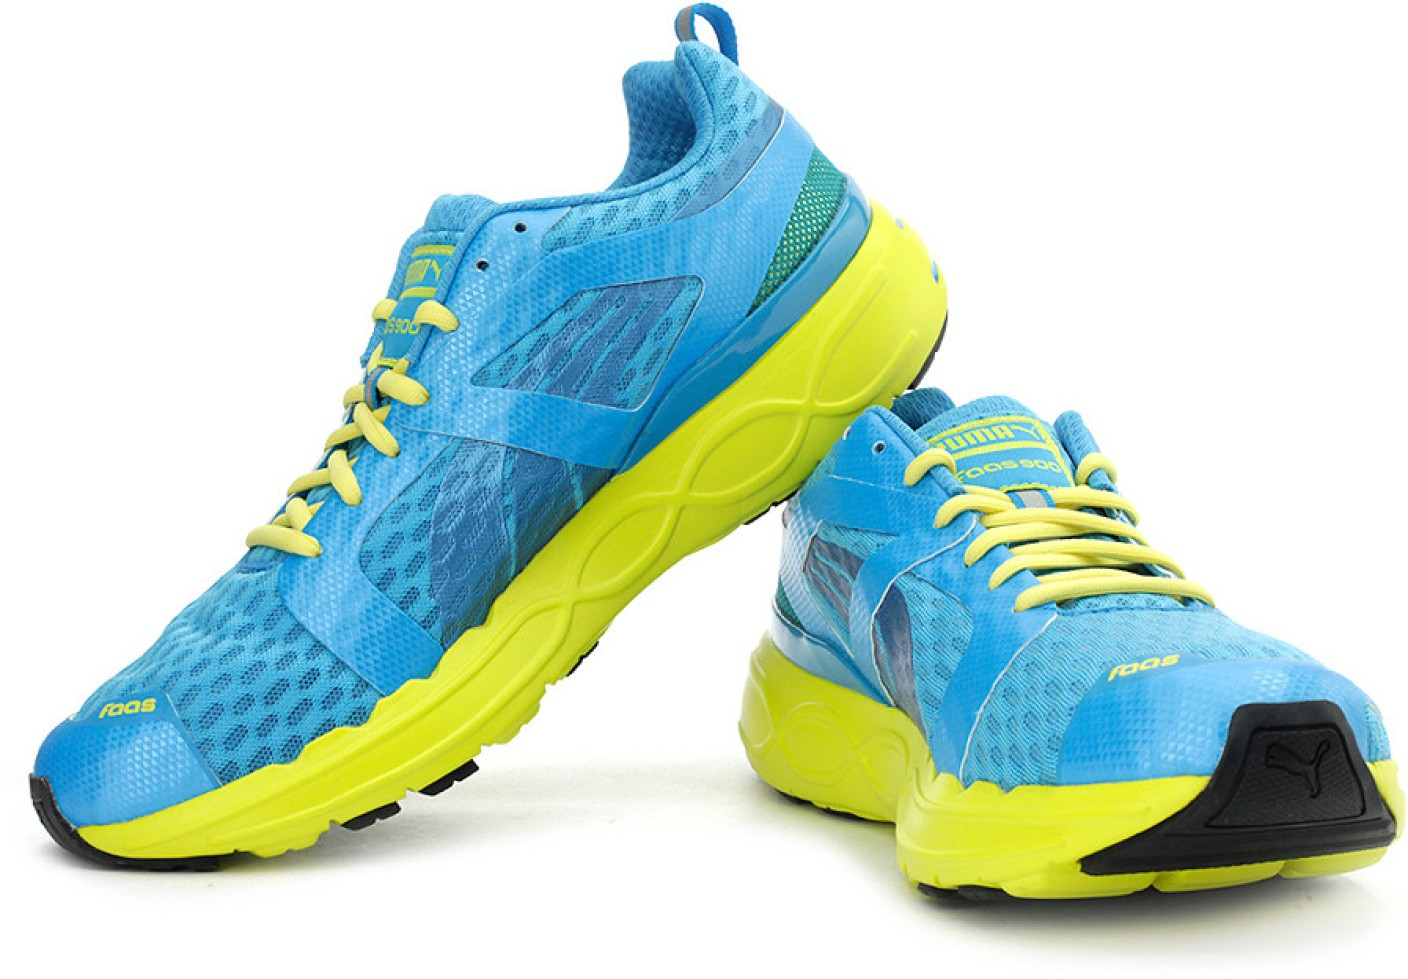 Best Place To Buy Running Shoes Online Uk